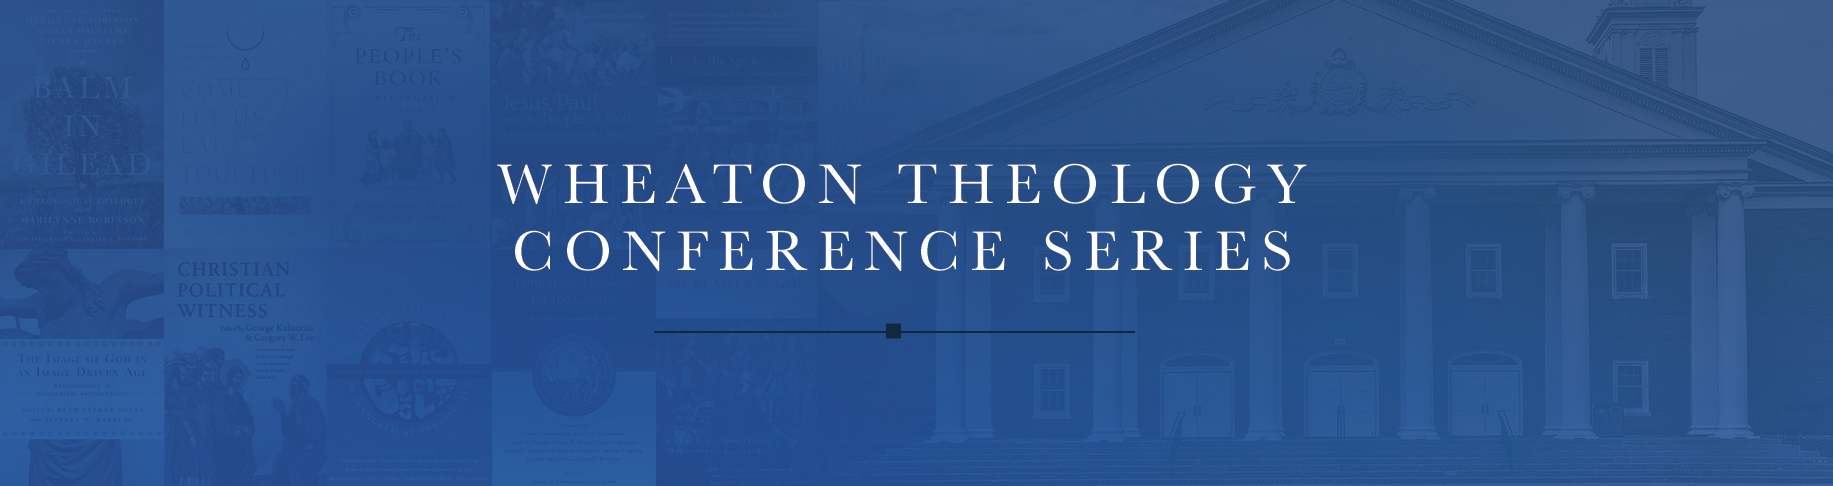 Wheaton Theology Conference Series